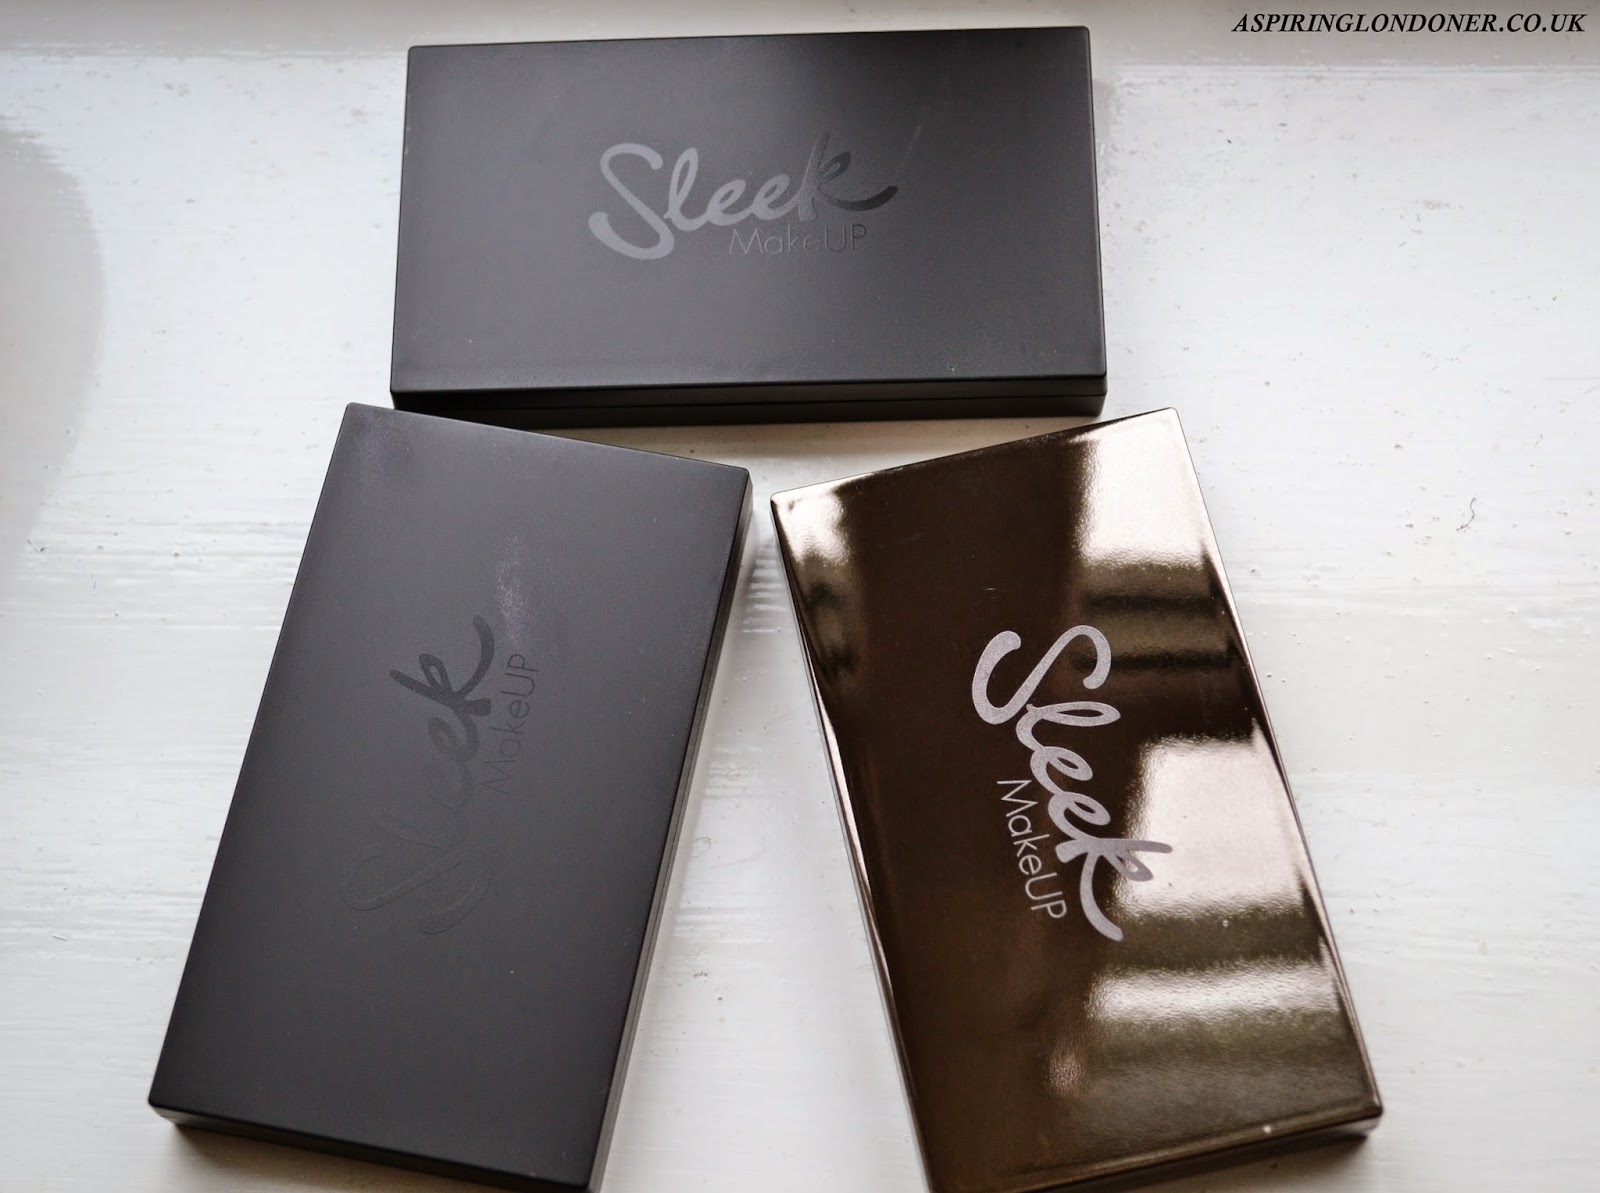 Sleek MakeUp Face & Highlighting Palettes Review - Aspiring Londoner